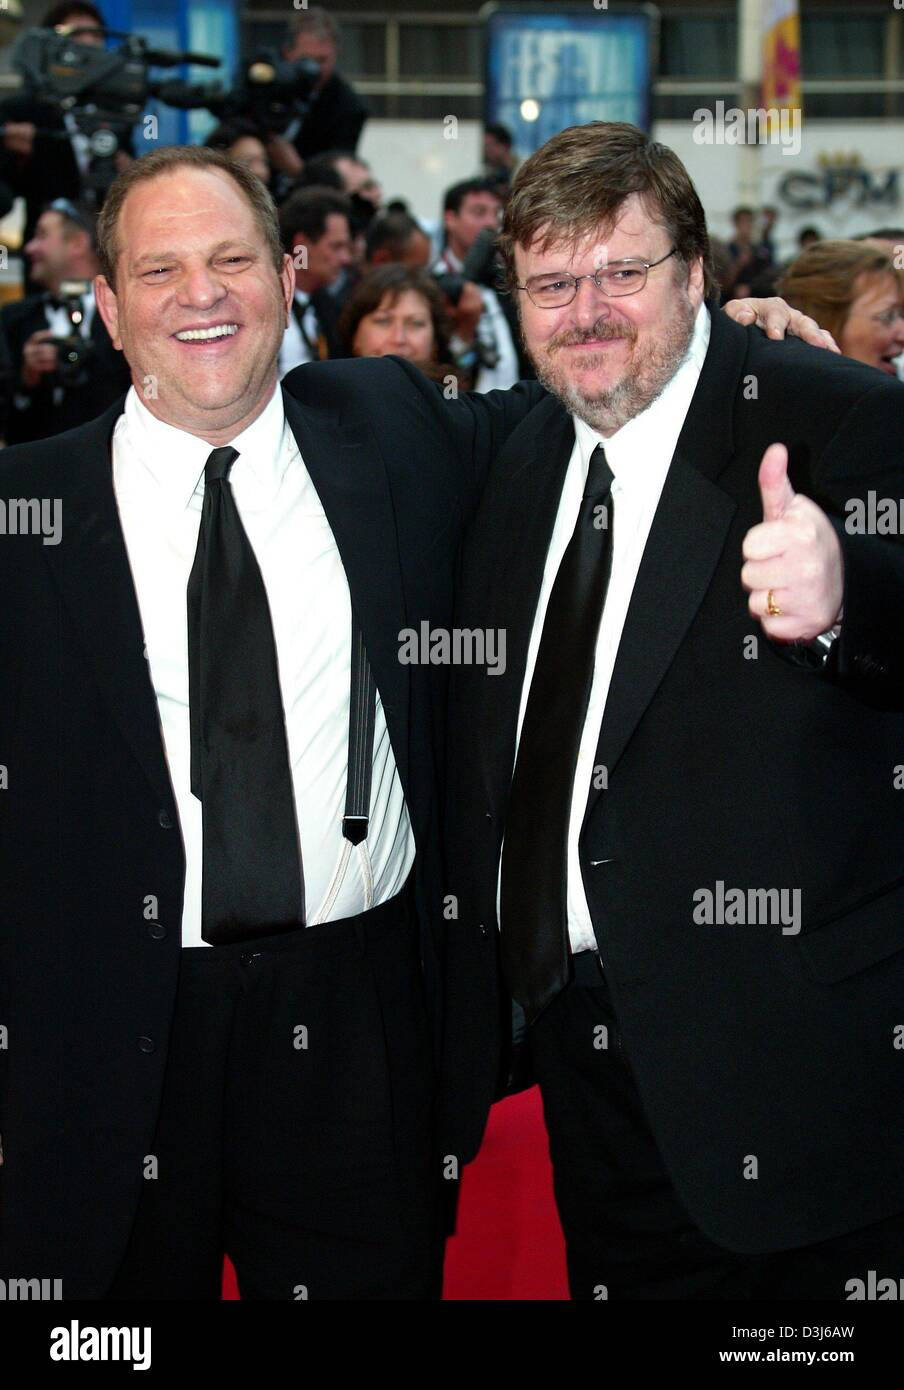 (dpa) - Film producer Harvey Weinstein (L) and US director Michael Moore smile during a photocall after the awardsStock Photo